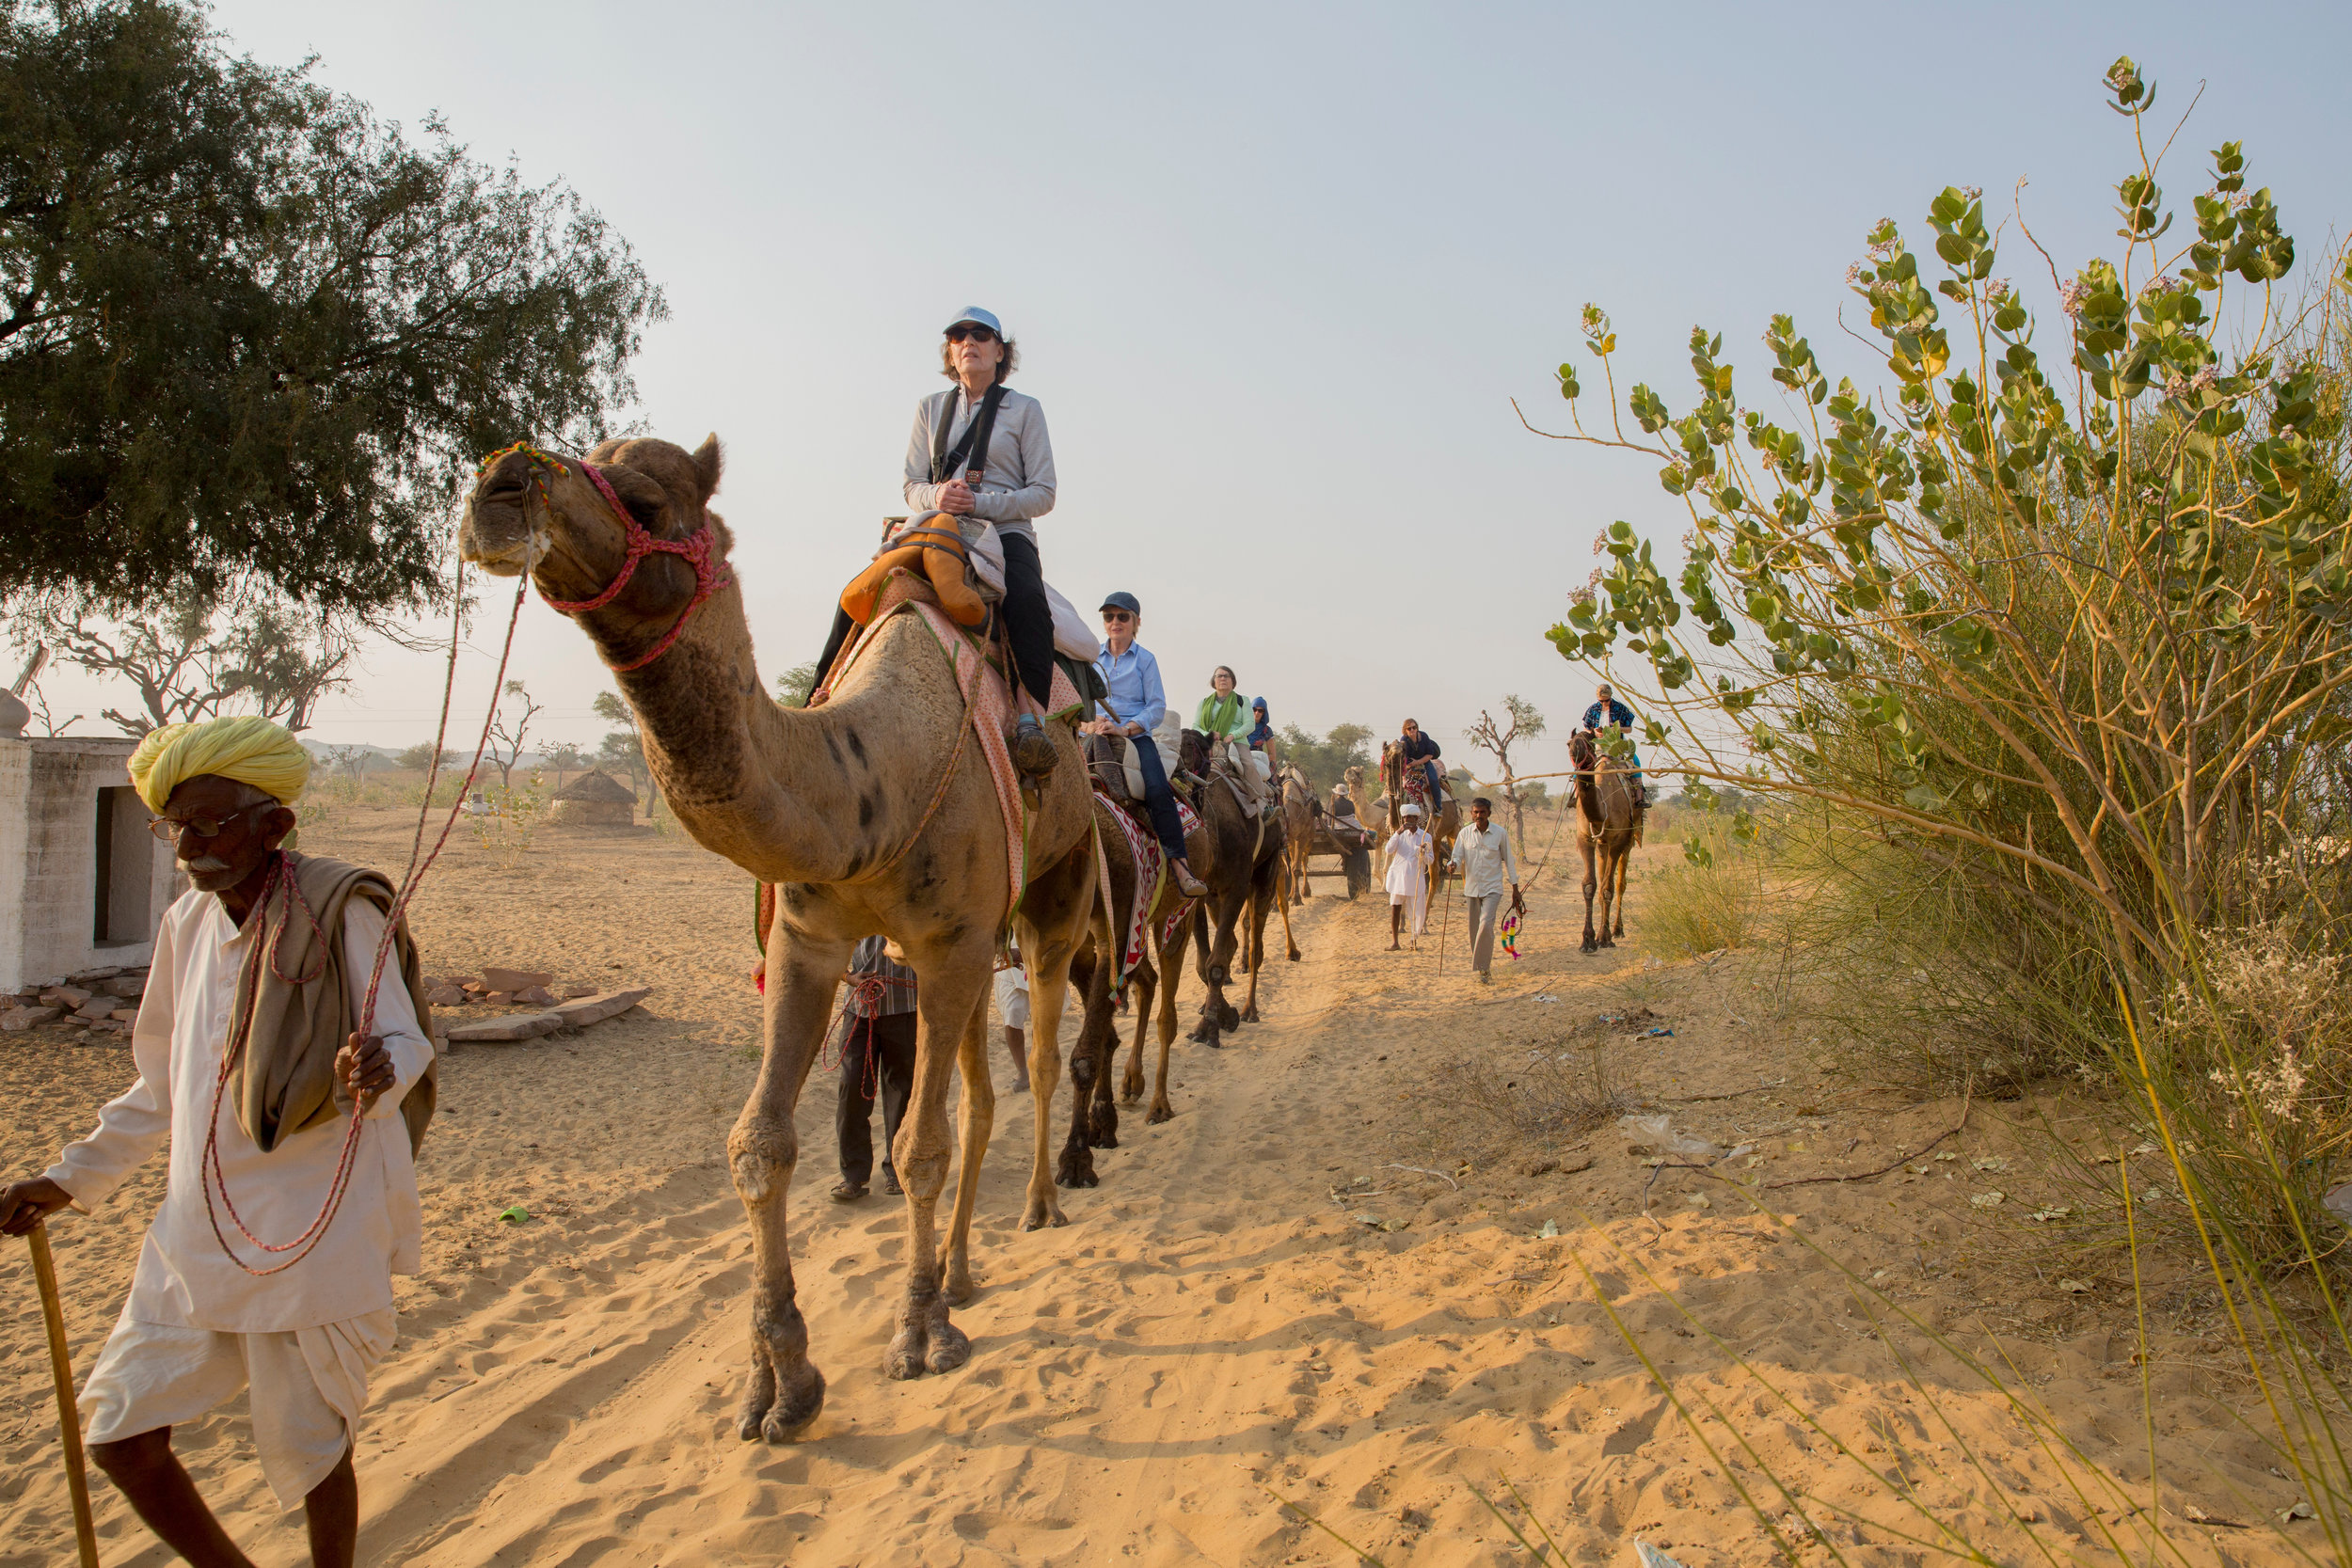 JEWELS OF RAJASTHAN - JANUARY 10TH-24TH, 2020